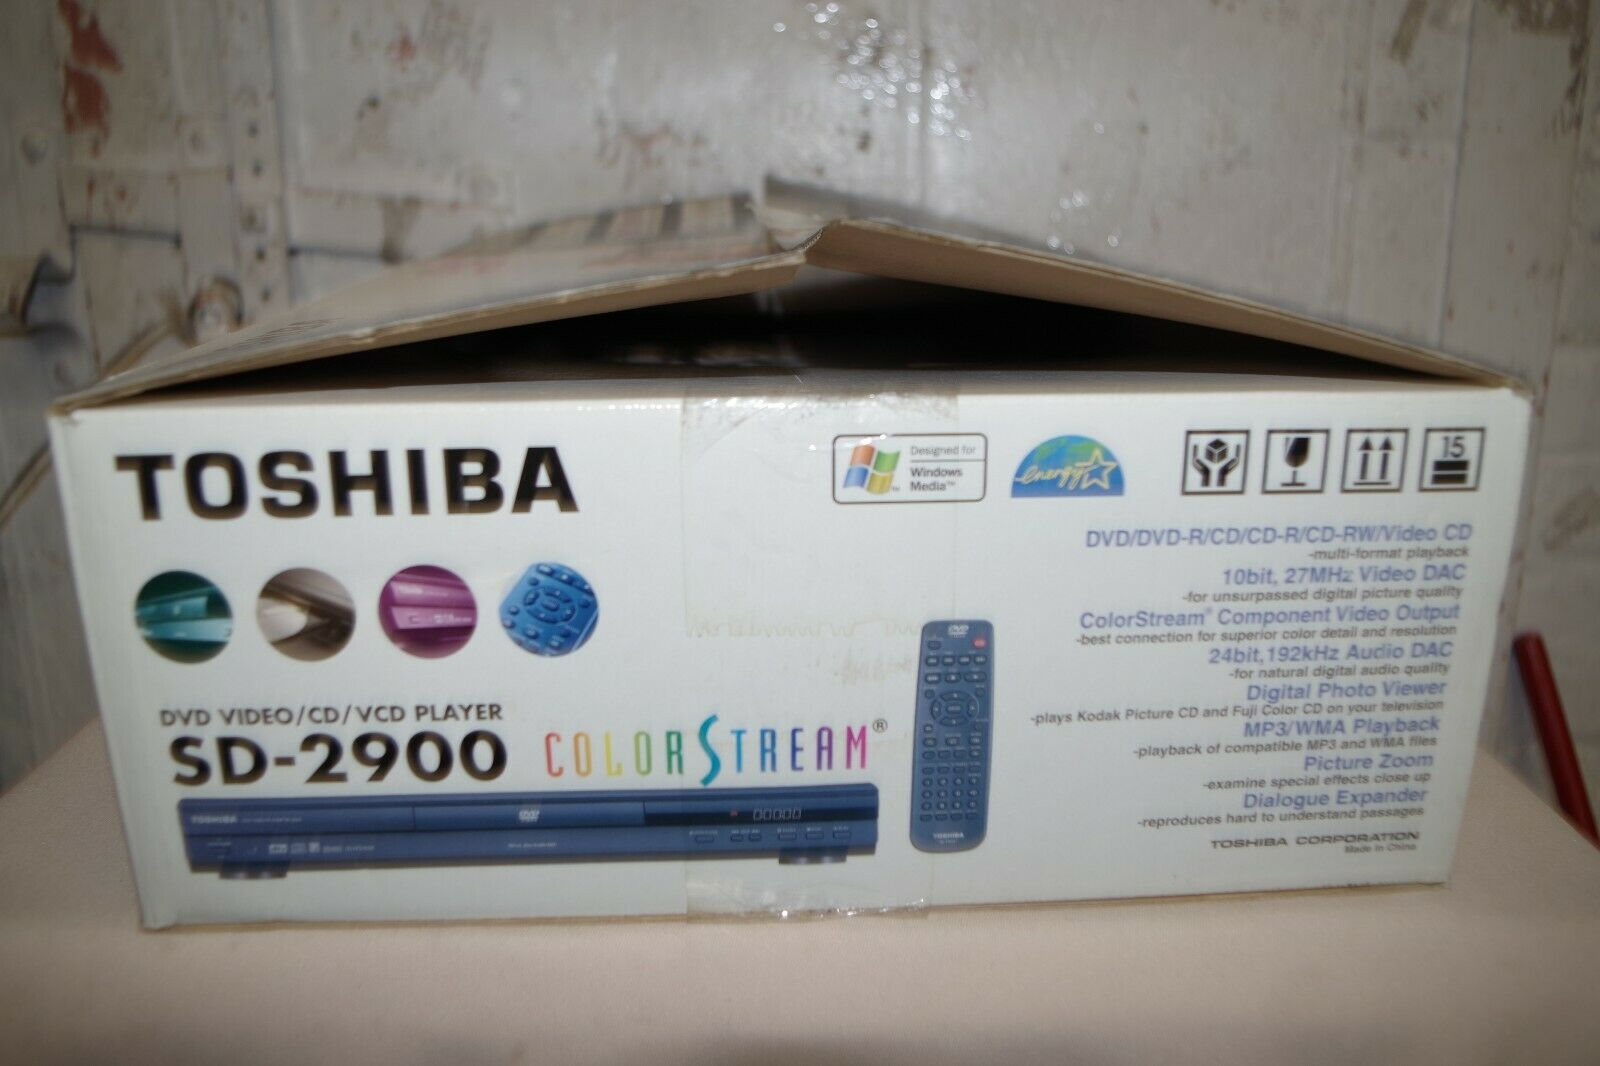 Toshiba DVD Video/CD/VCD Player SD-2900 NEW in box Color Stream box color dvd new player stream toshiba